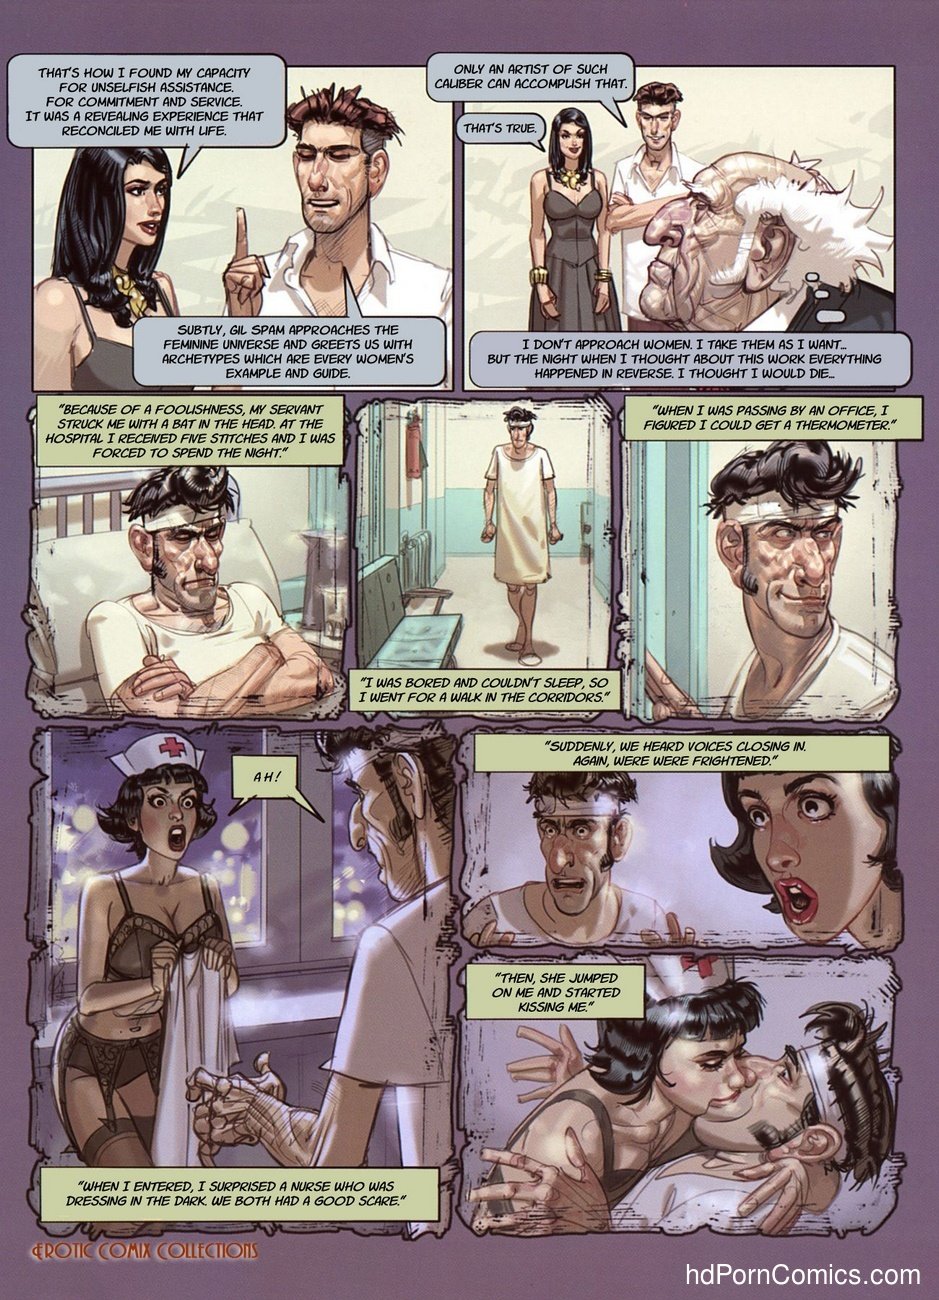 Exhibition-3-The-Happy-Nurse6 free sex comic